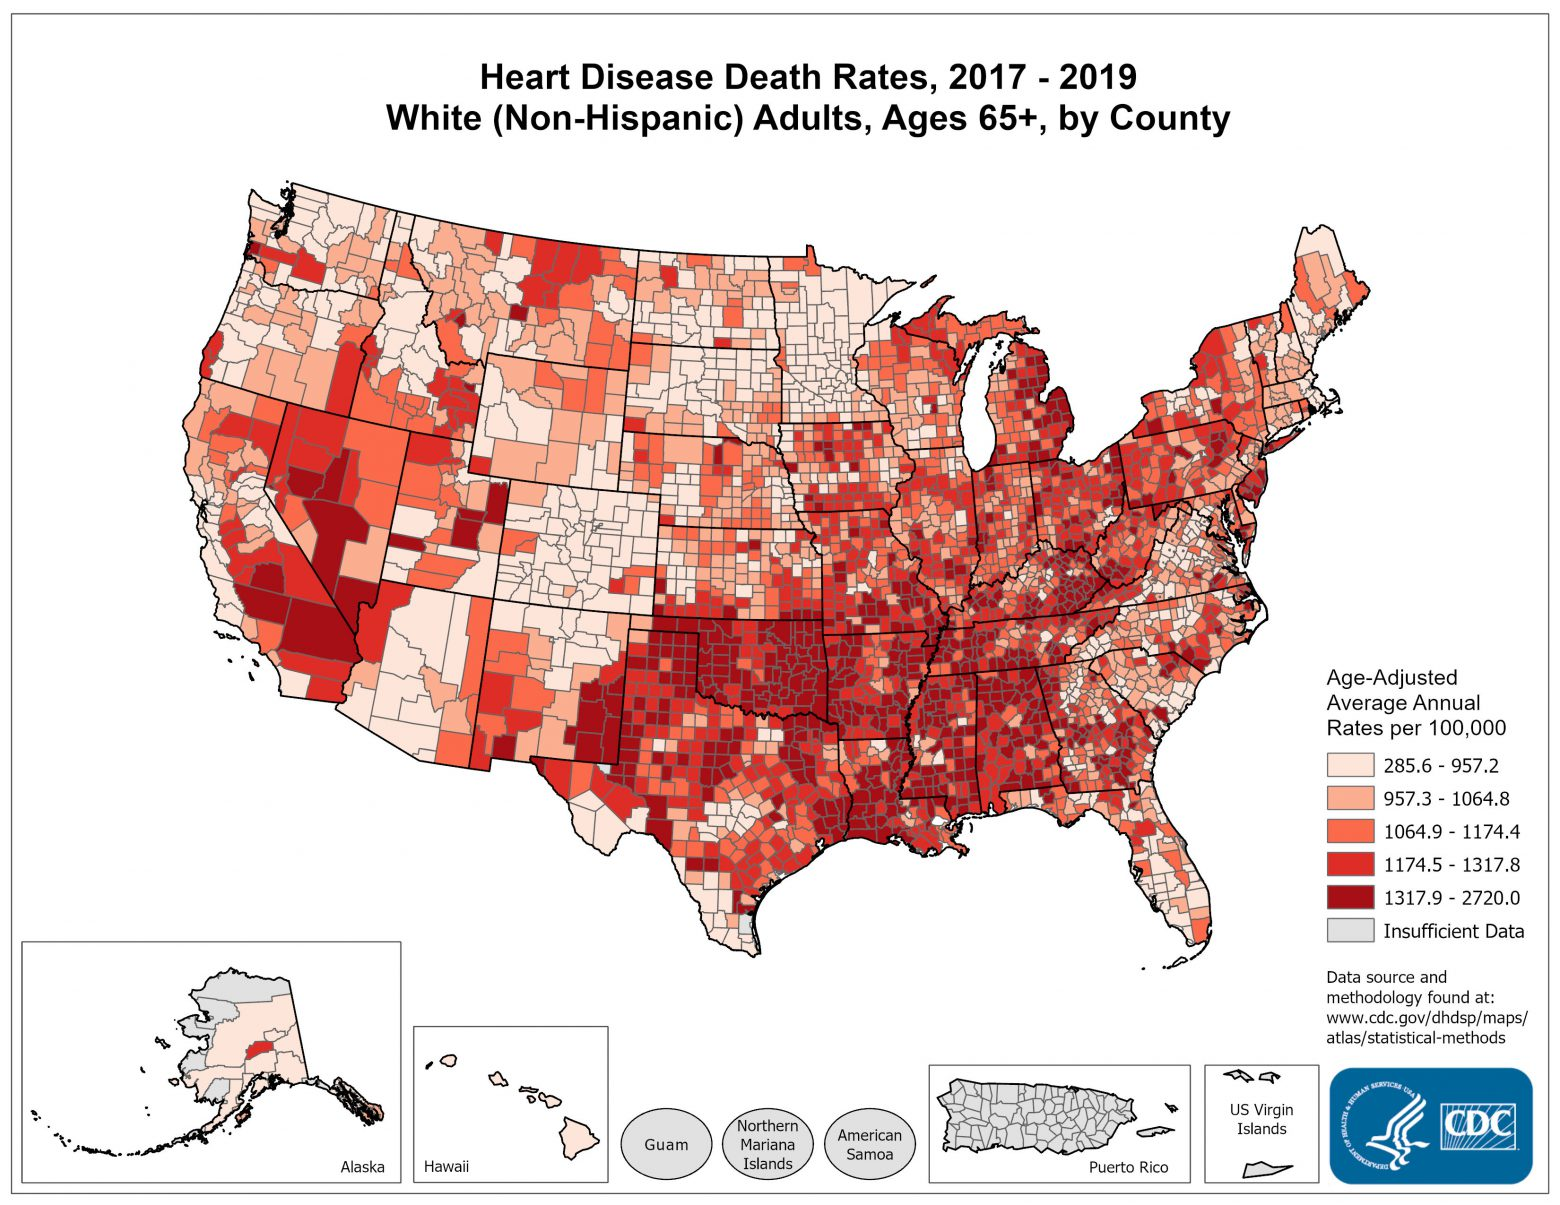 Heart Disease Death Rates for 2012 through 2014 for Whites Aged 65 Years and Older by County. The map shows that concentrations of counties with the highest heart disease death rates - meaning the top quintile - are located primarily in Mississippi, Oklahoma, Arkansas, Louisiana, and Alabama.  Pockets of high-rate counties also were found in Georgia, Kentucky, Tennessee, Missouri, Michigan, Nevada, Texas, and California.